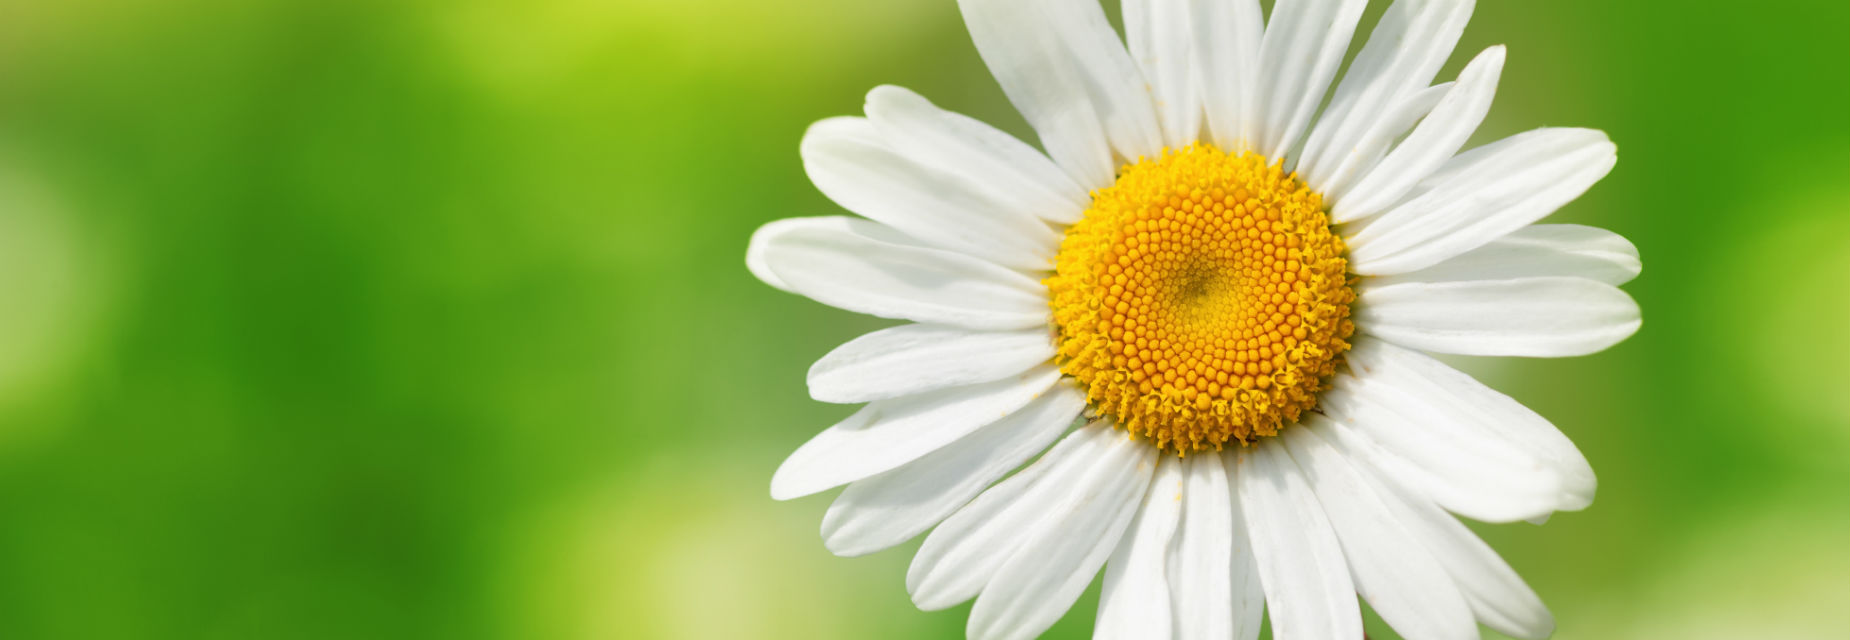 Close up of a daisy on a green background